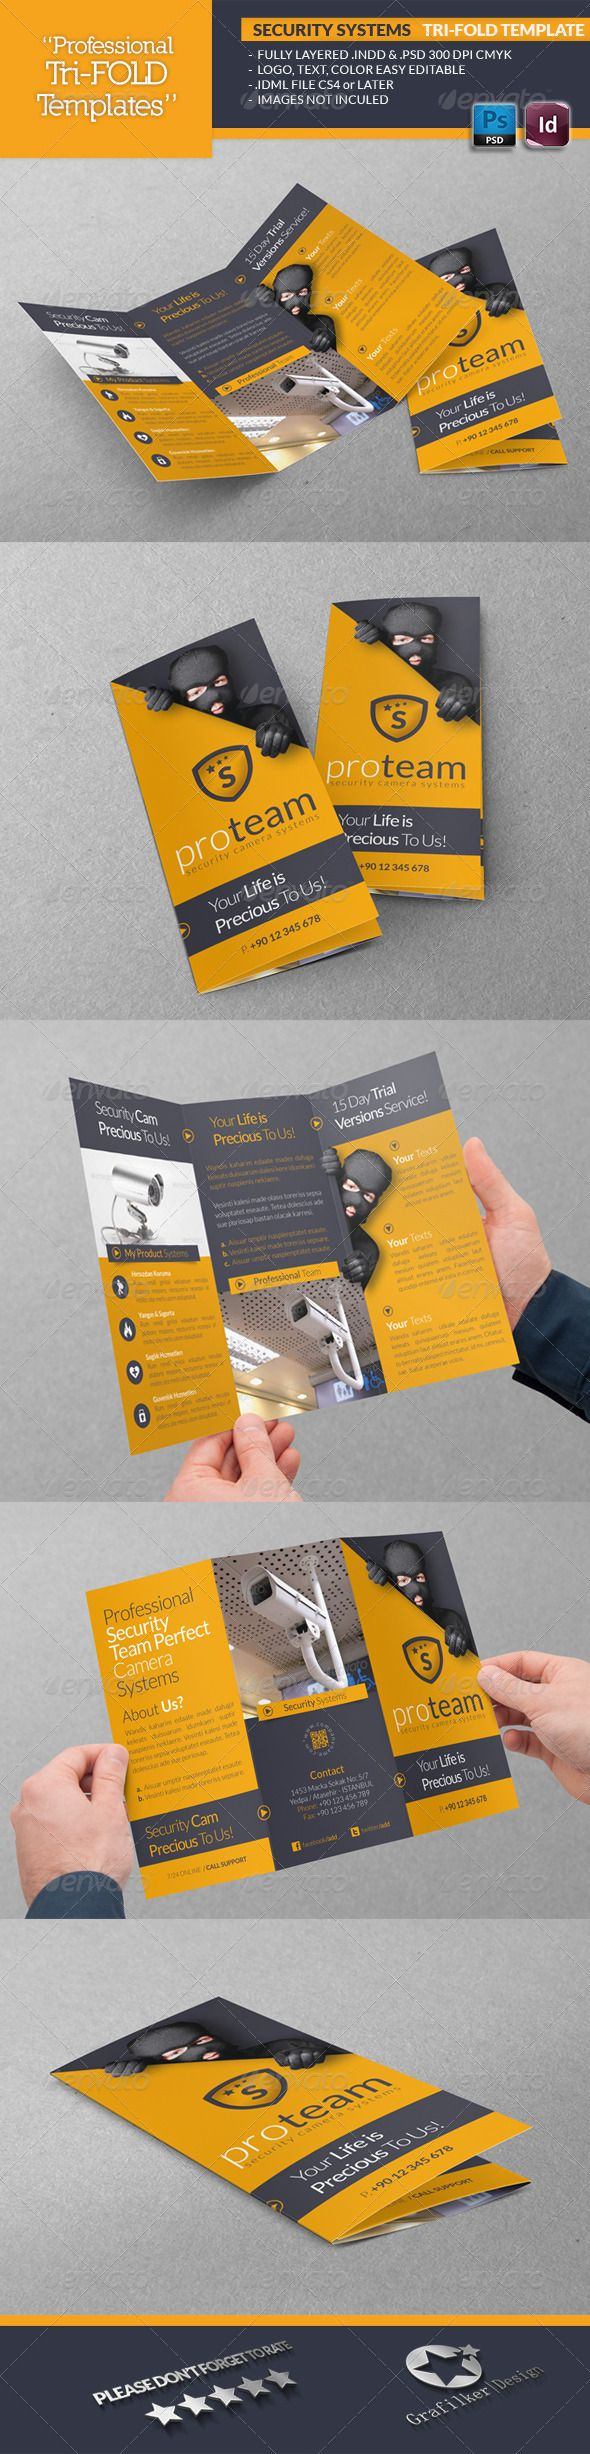 security systems tri fold template indesign indd cs4 297x210